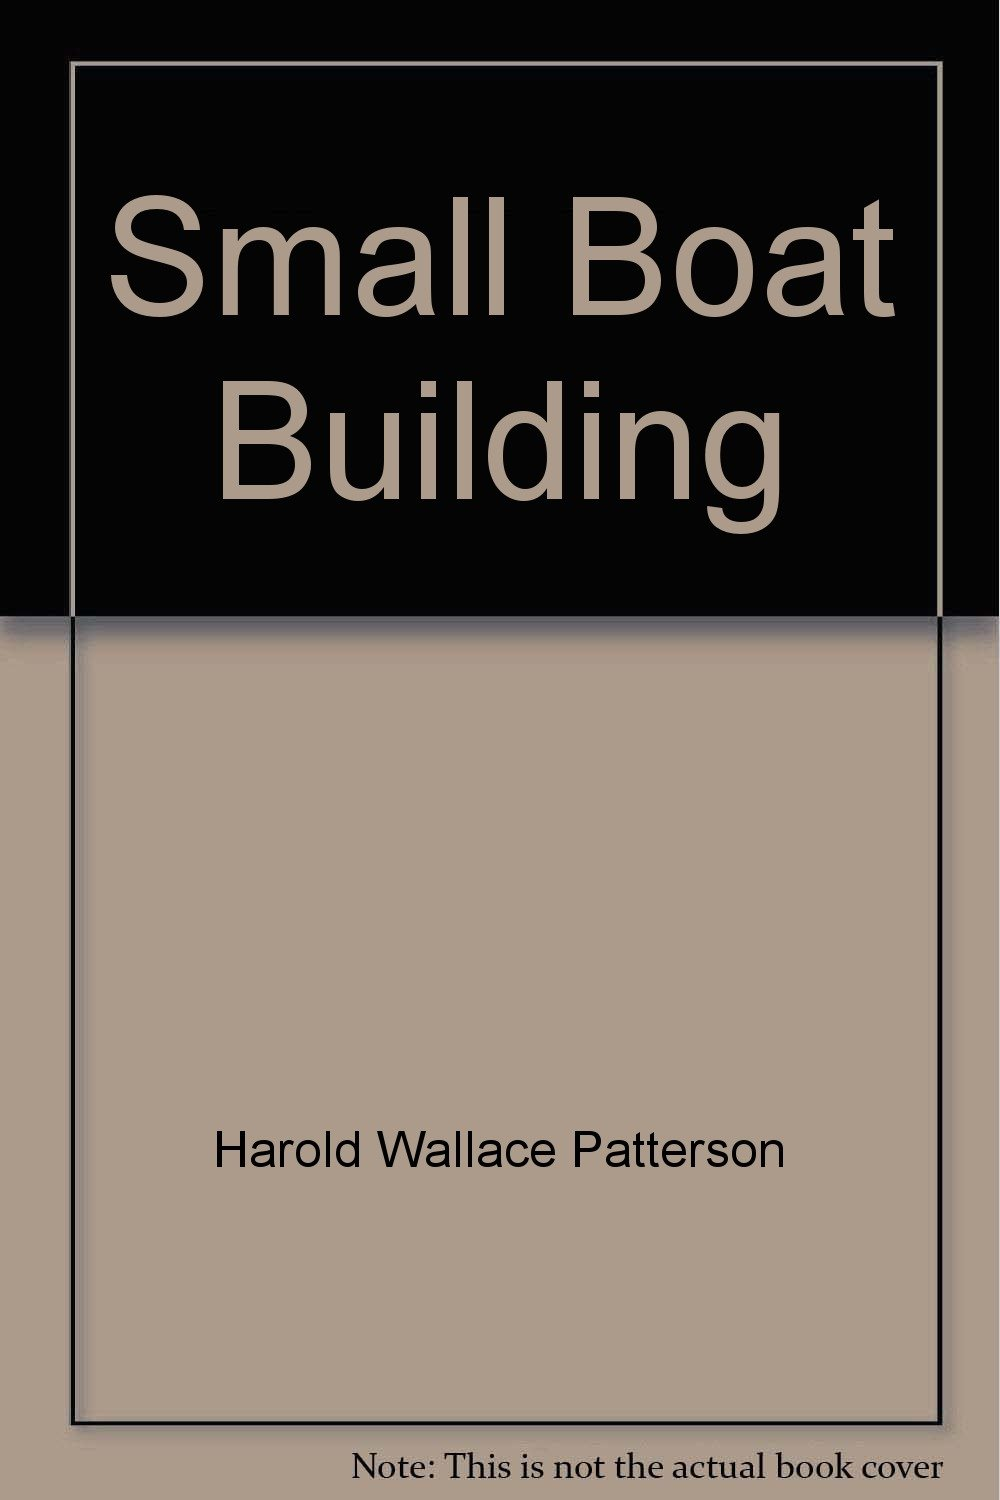 Small Boat Building